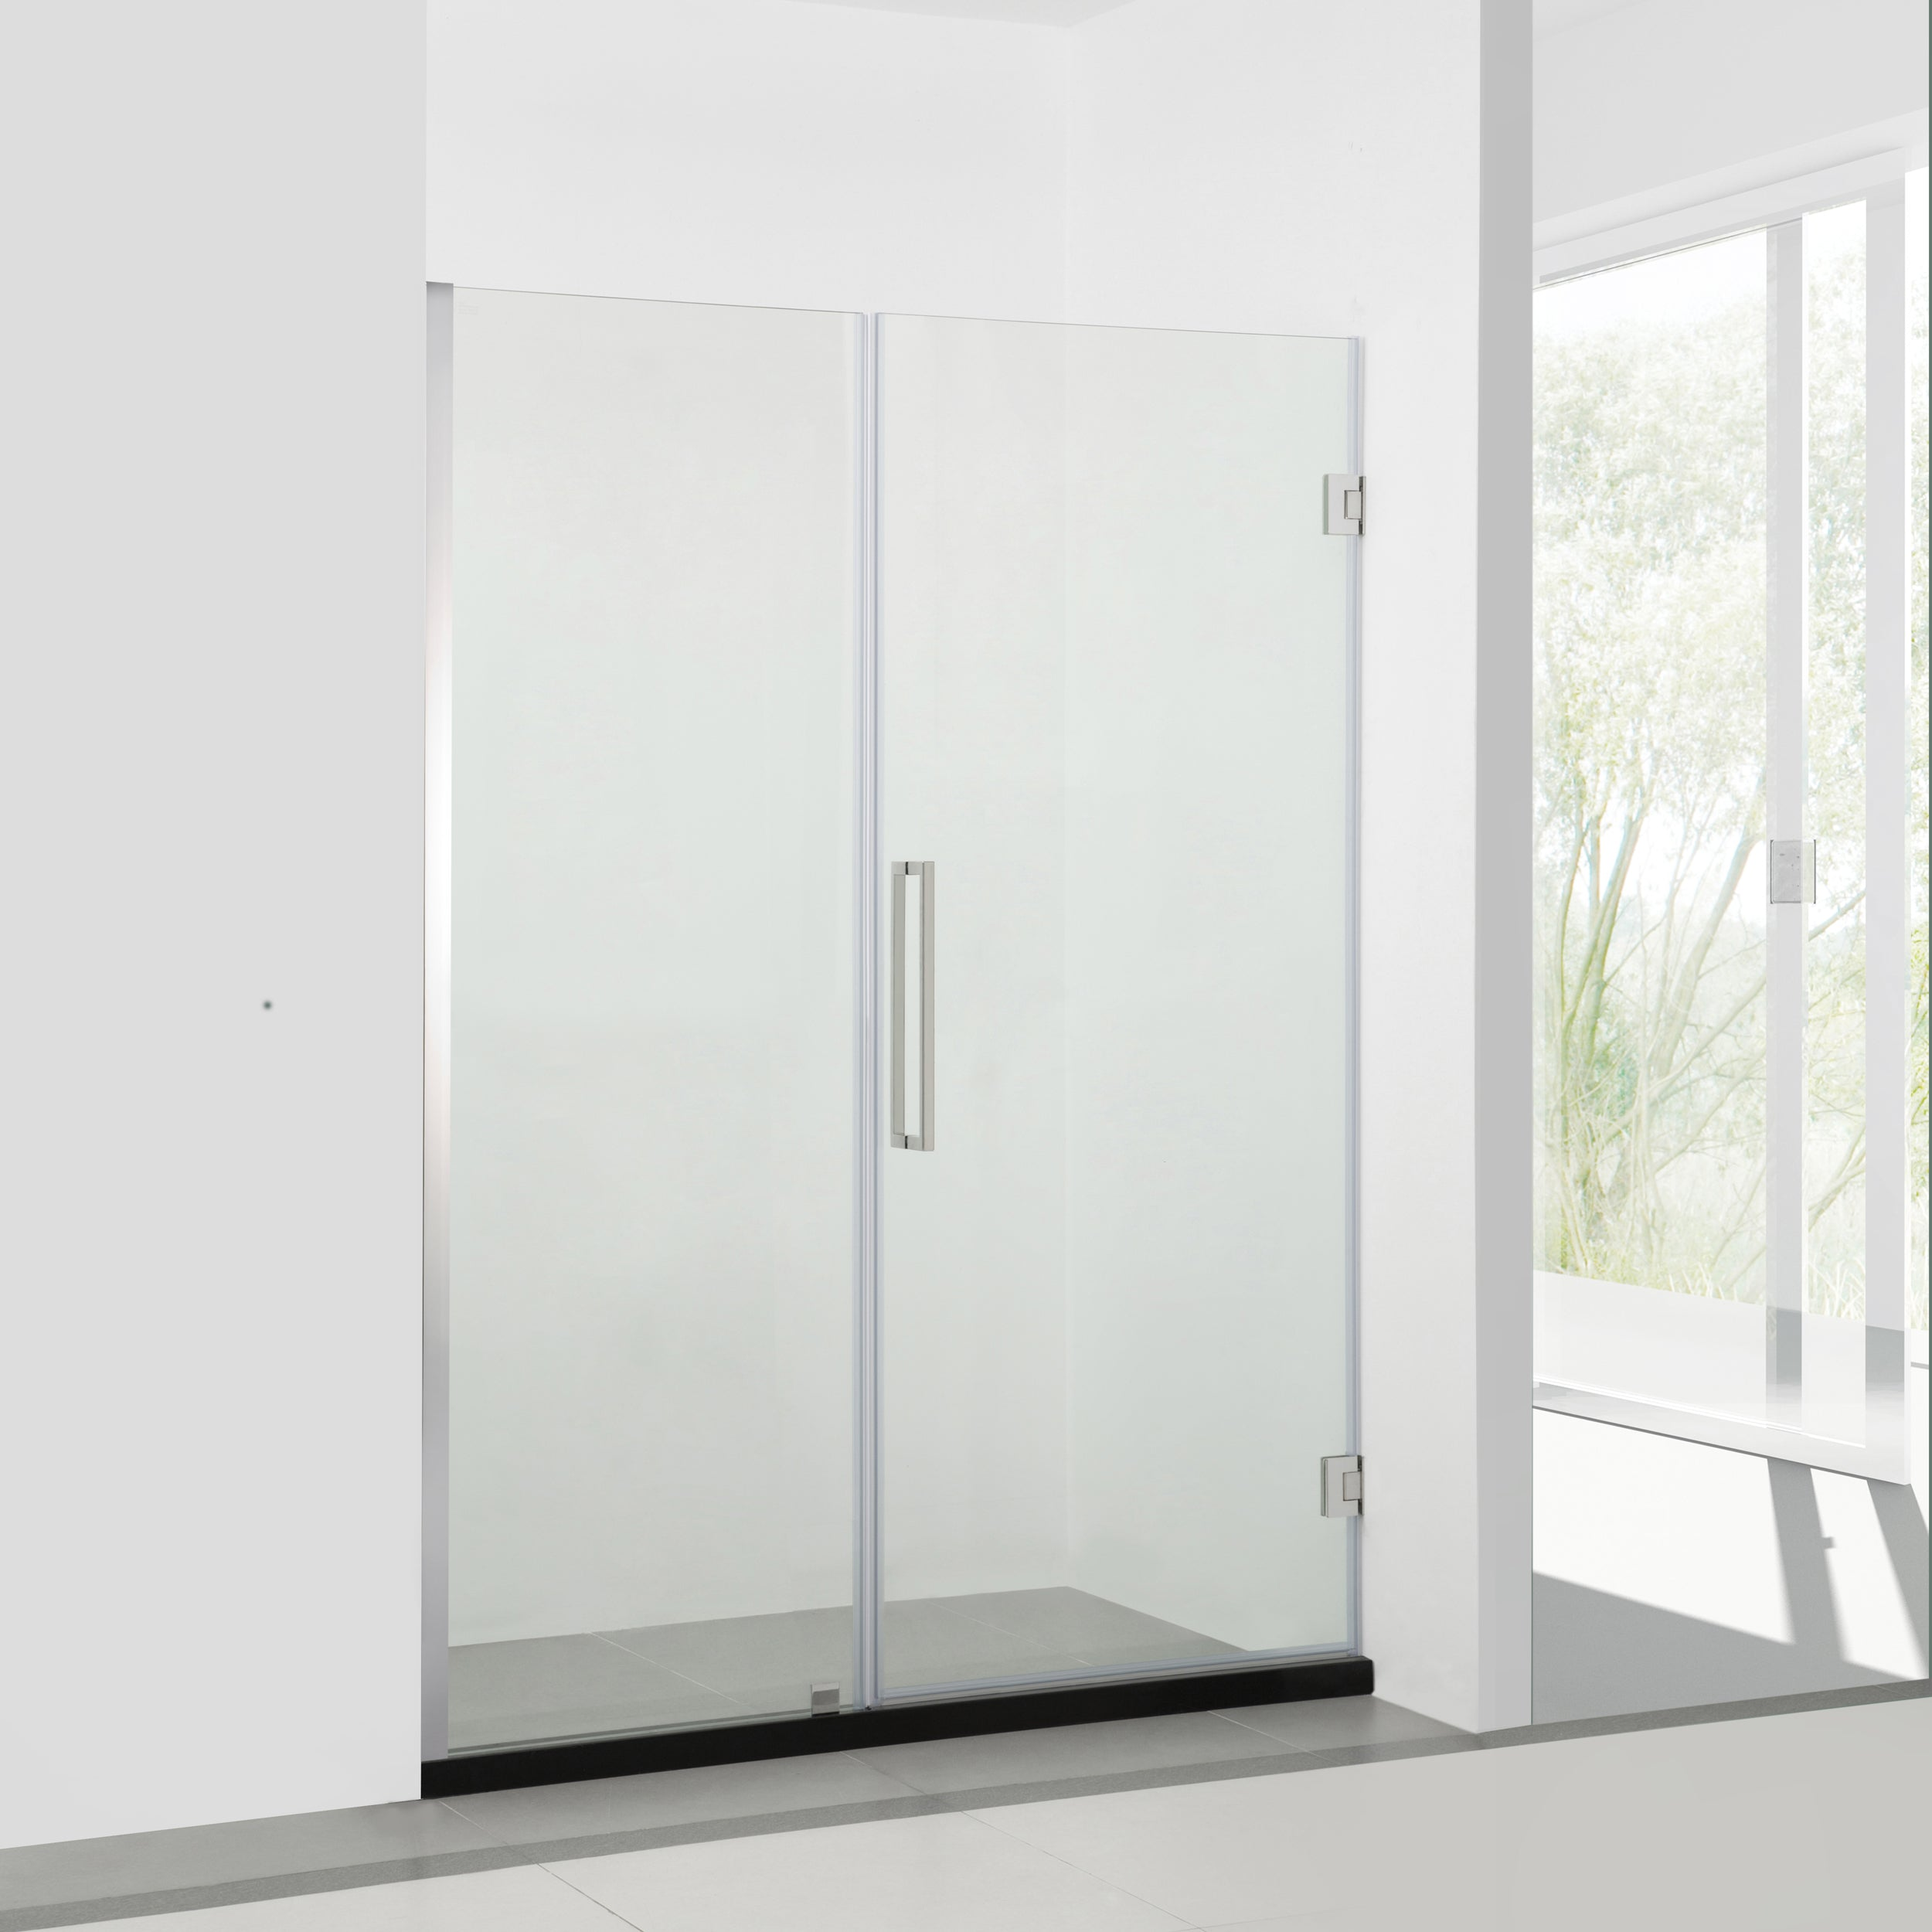 BAI 0926 Frameless Glass Shower Enclosure With Fixed Panel and Swing / French Door - 48 & Glass Shower Enclosures \u2013 MegaBAI